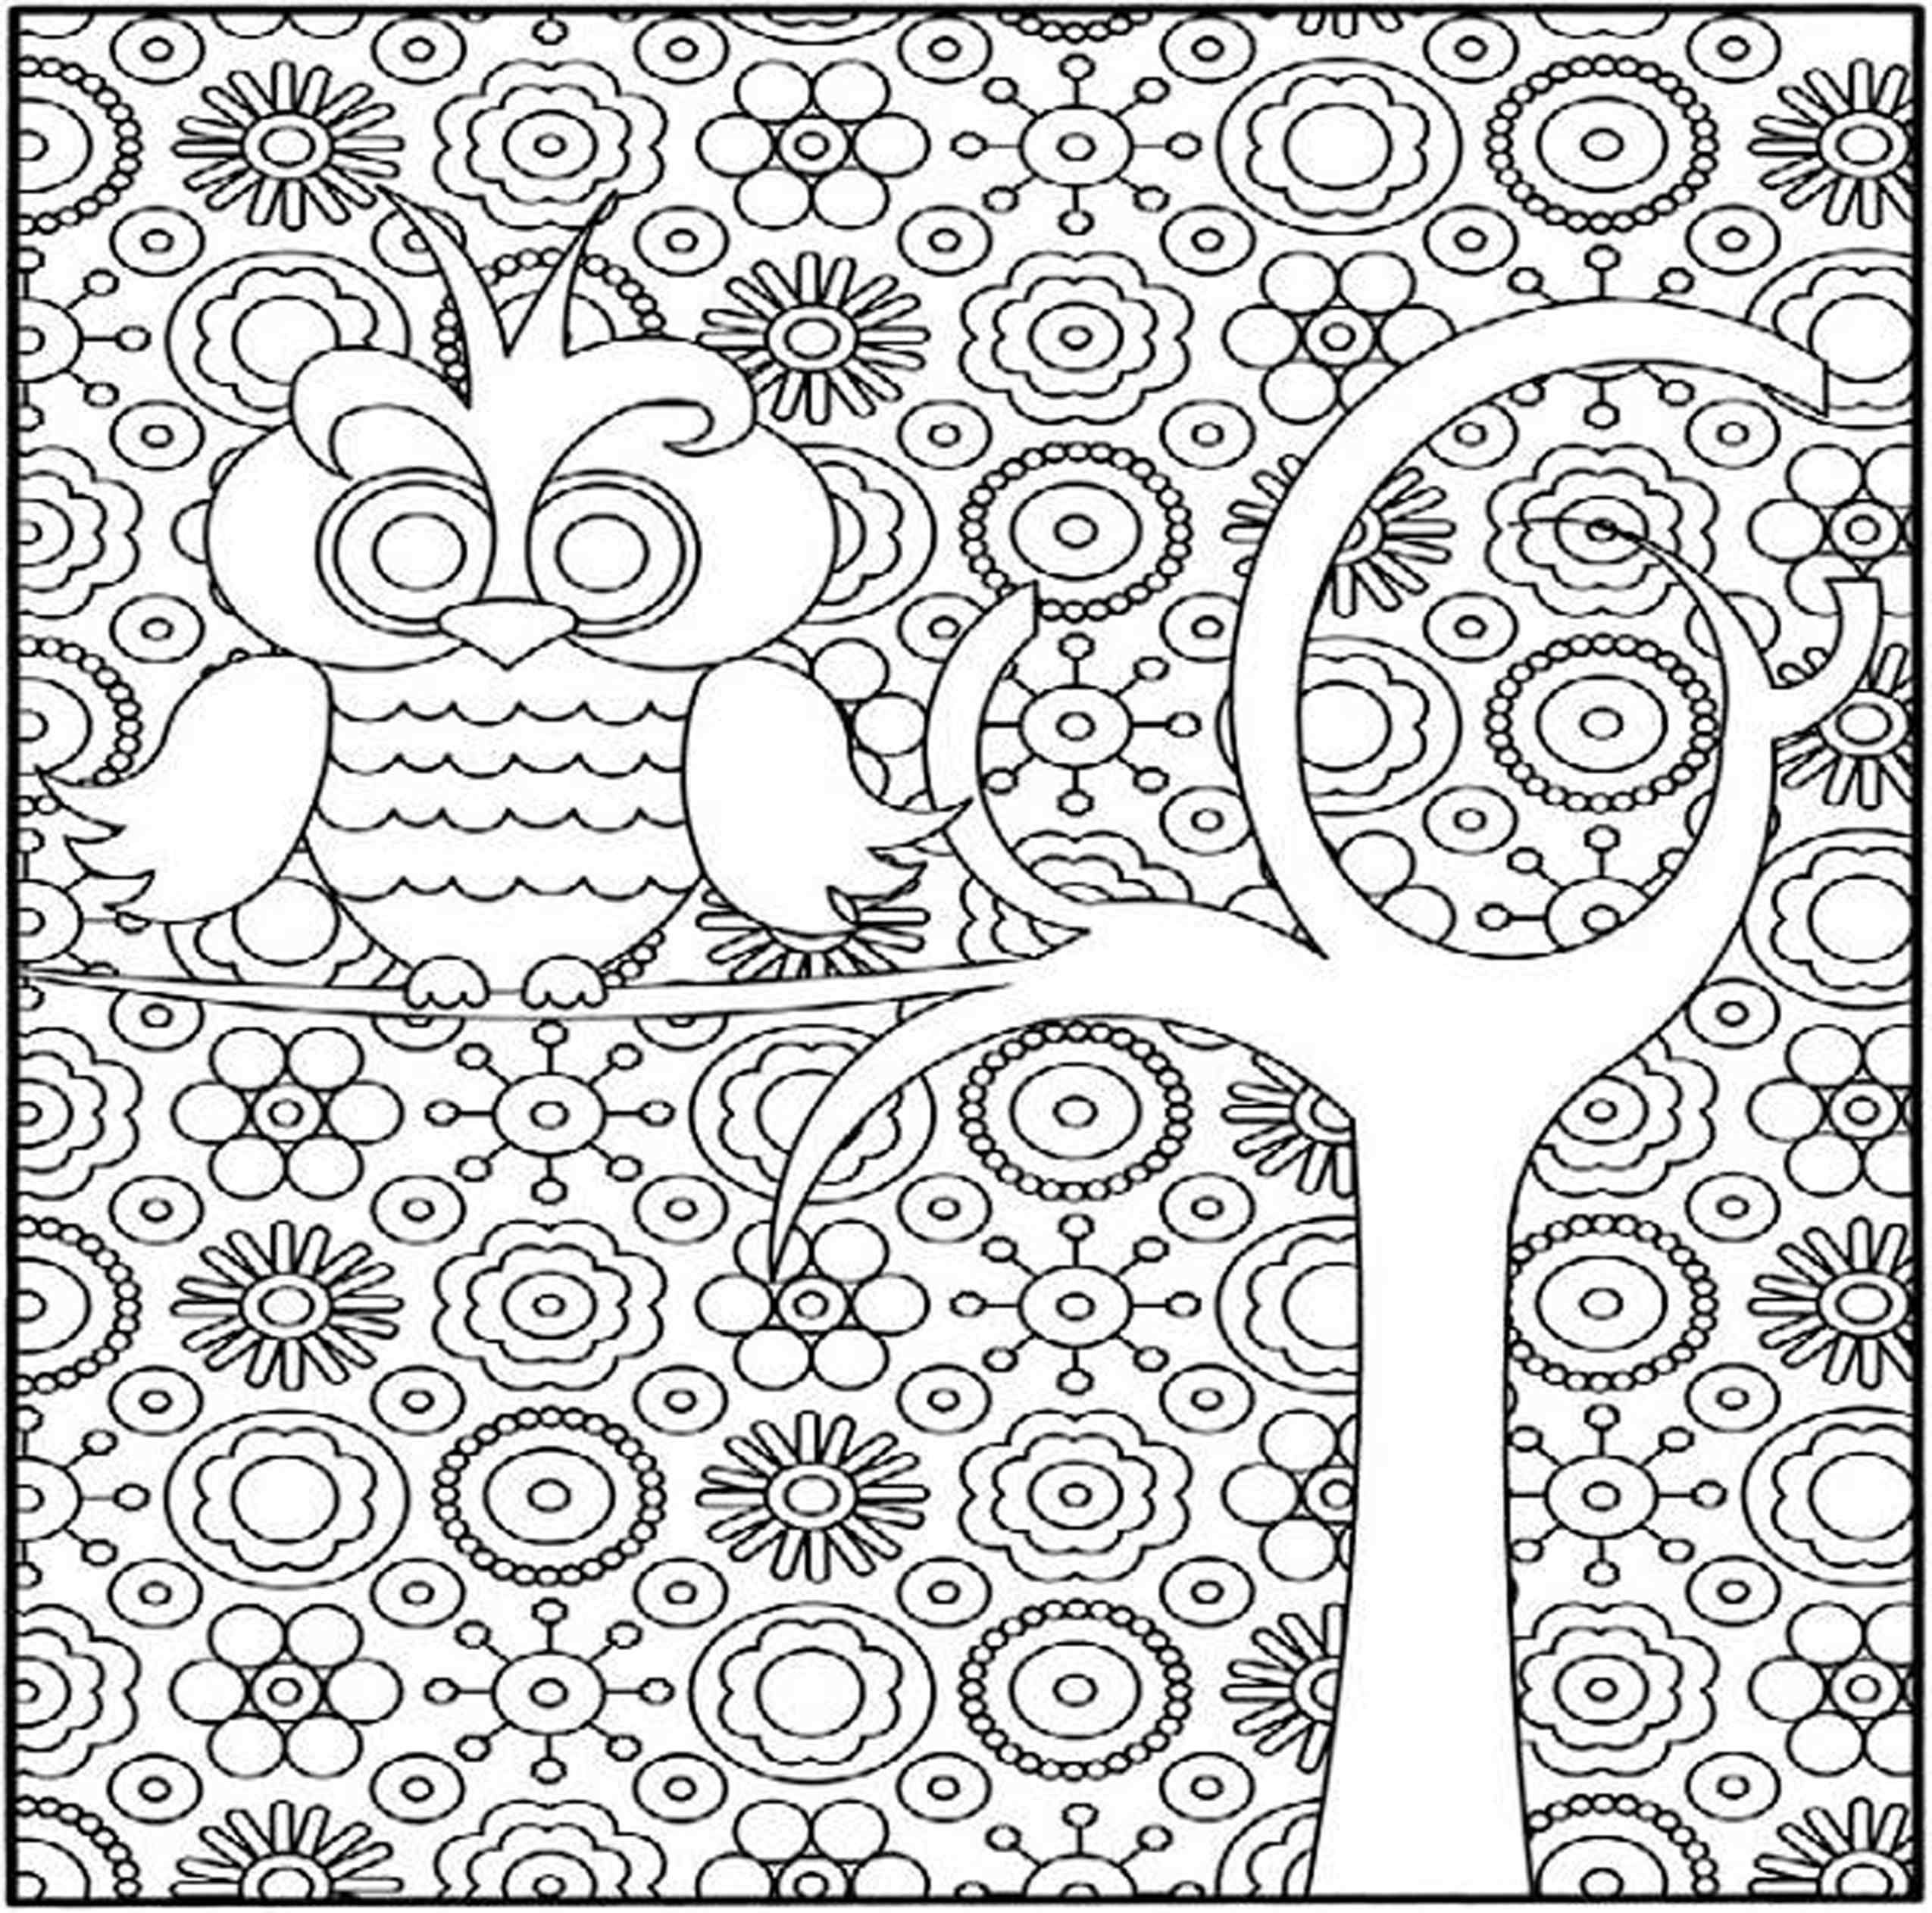 free printable coloring pages for adults and kids really hard detailed coloring pages coloring home for adults pages kids and coloring printable free